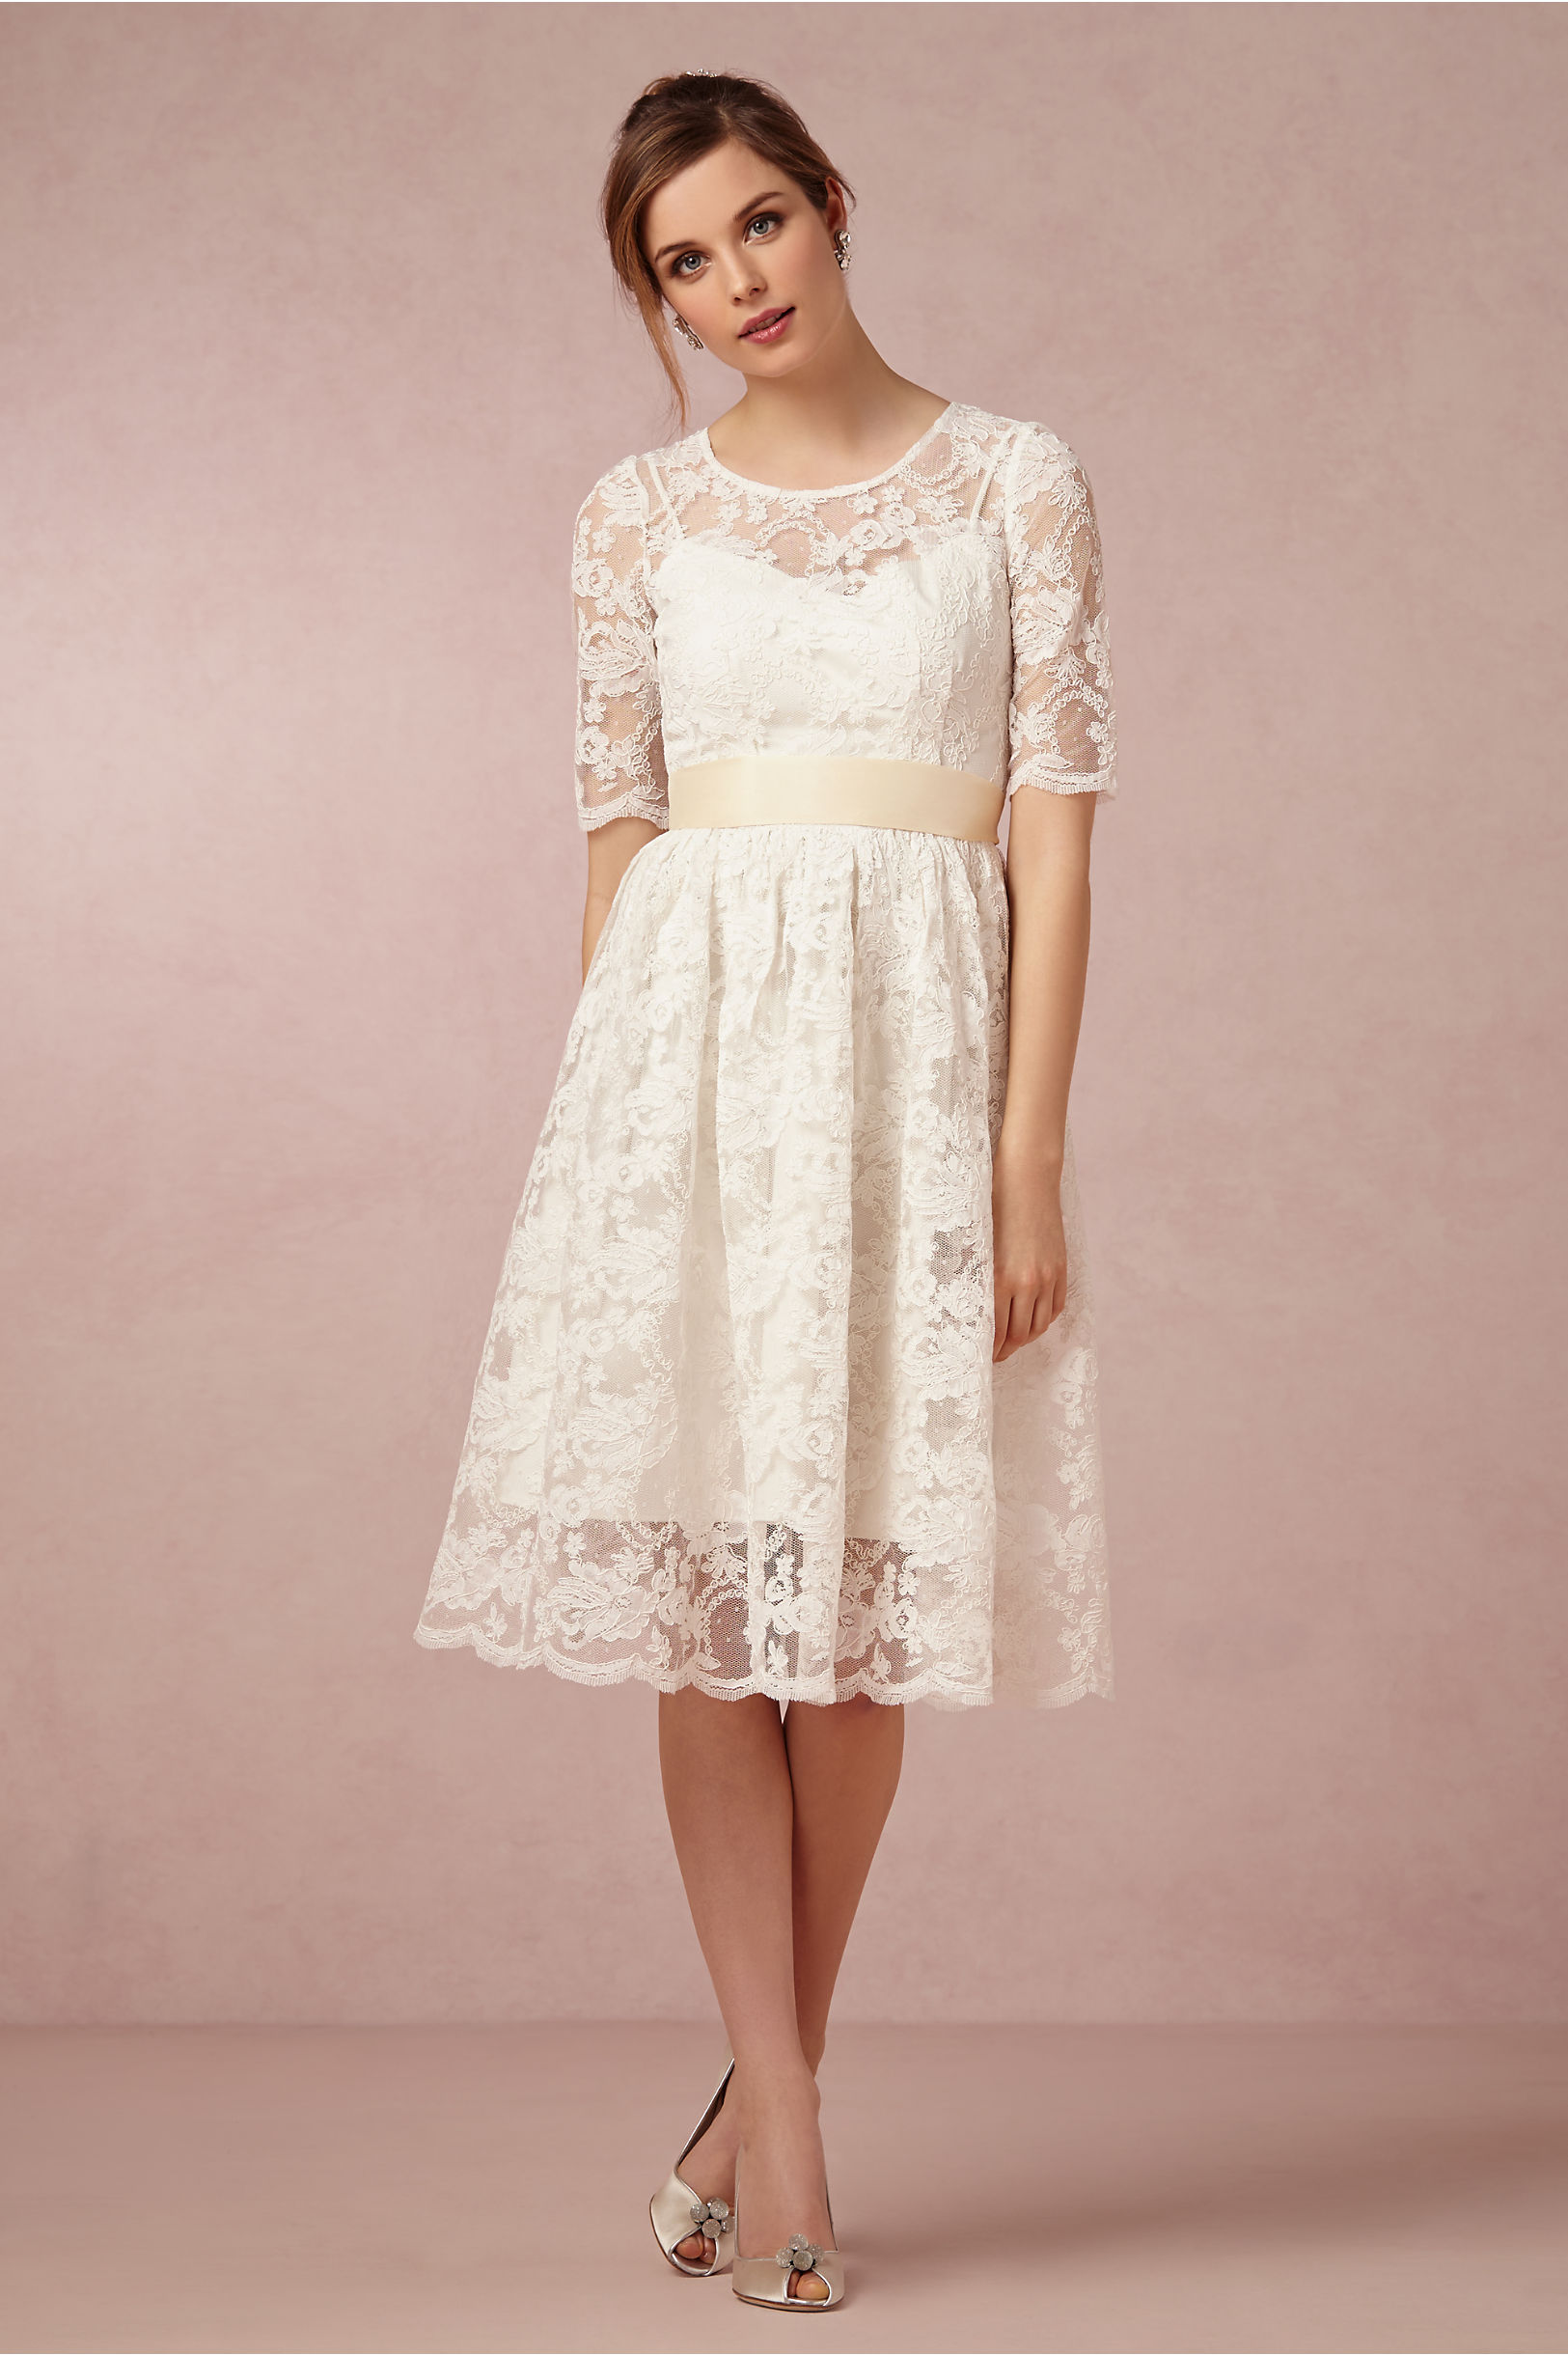 Tessa Dress in Occasion Dresses | BHLDN